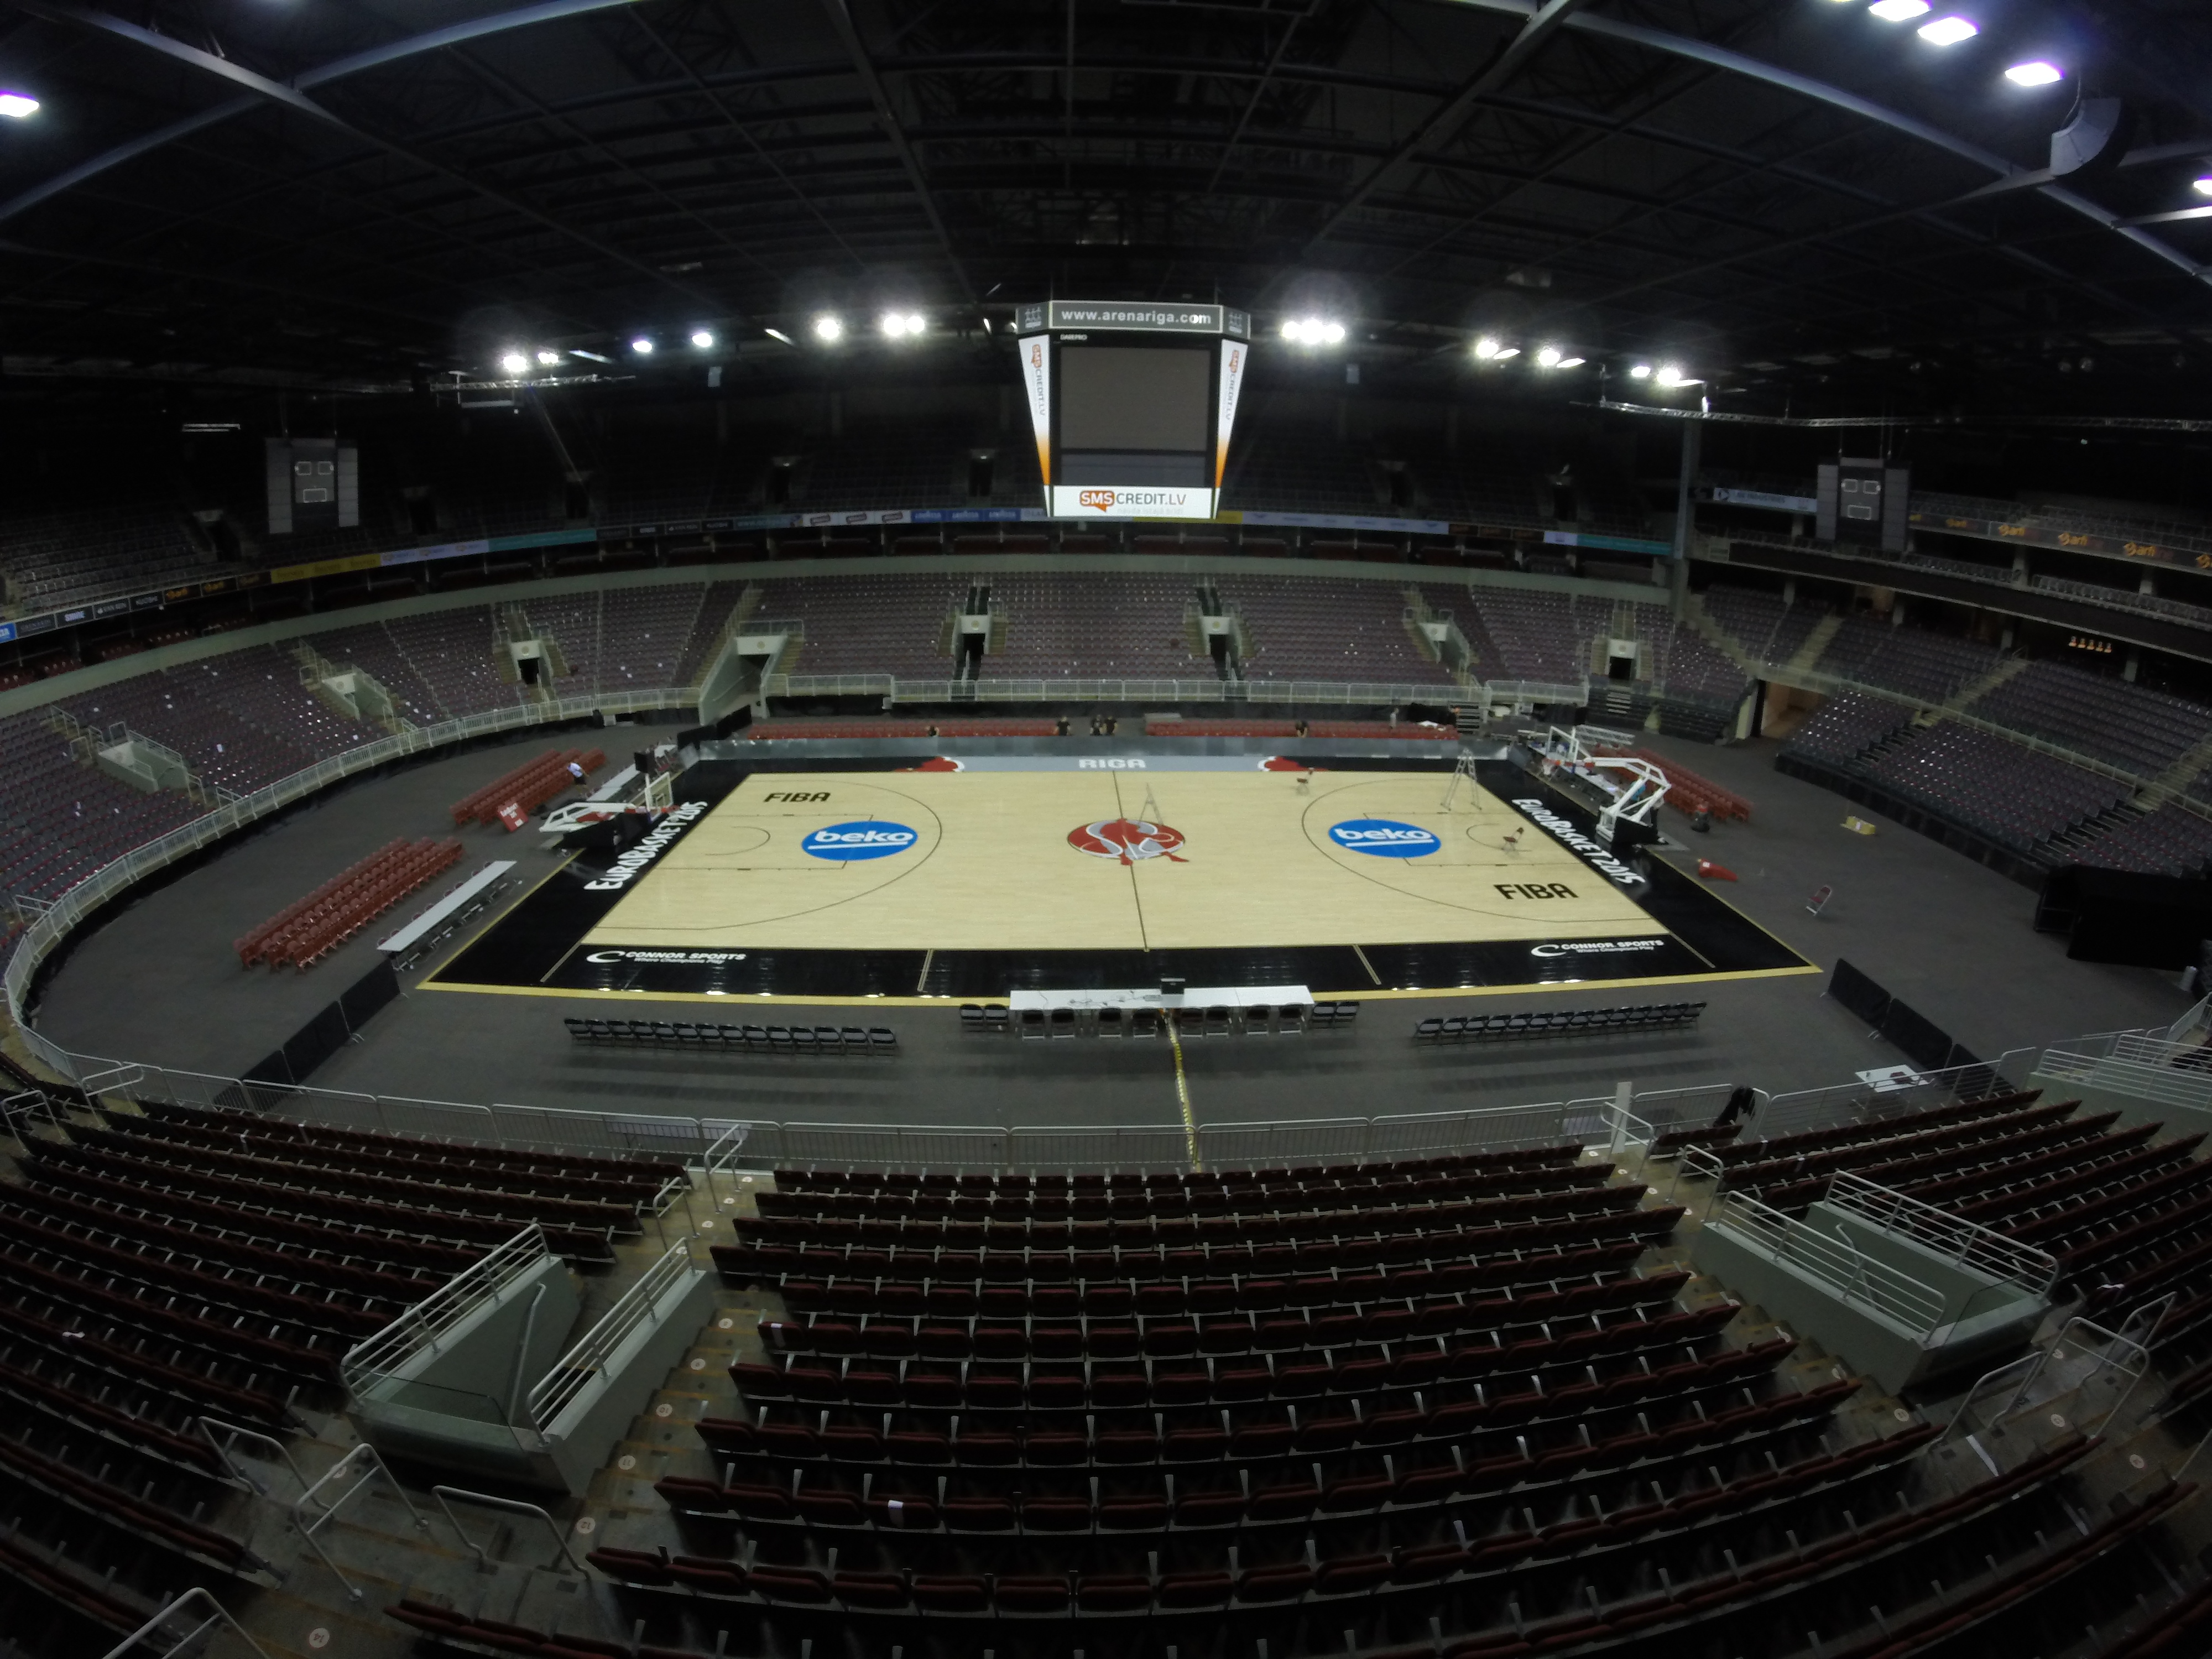 Stories from the #OfficialCourt of EuroBasket 2015: Riga, Latvia